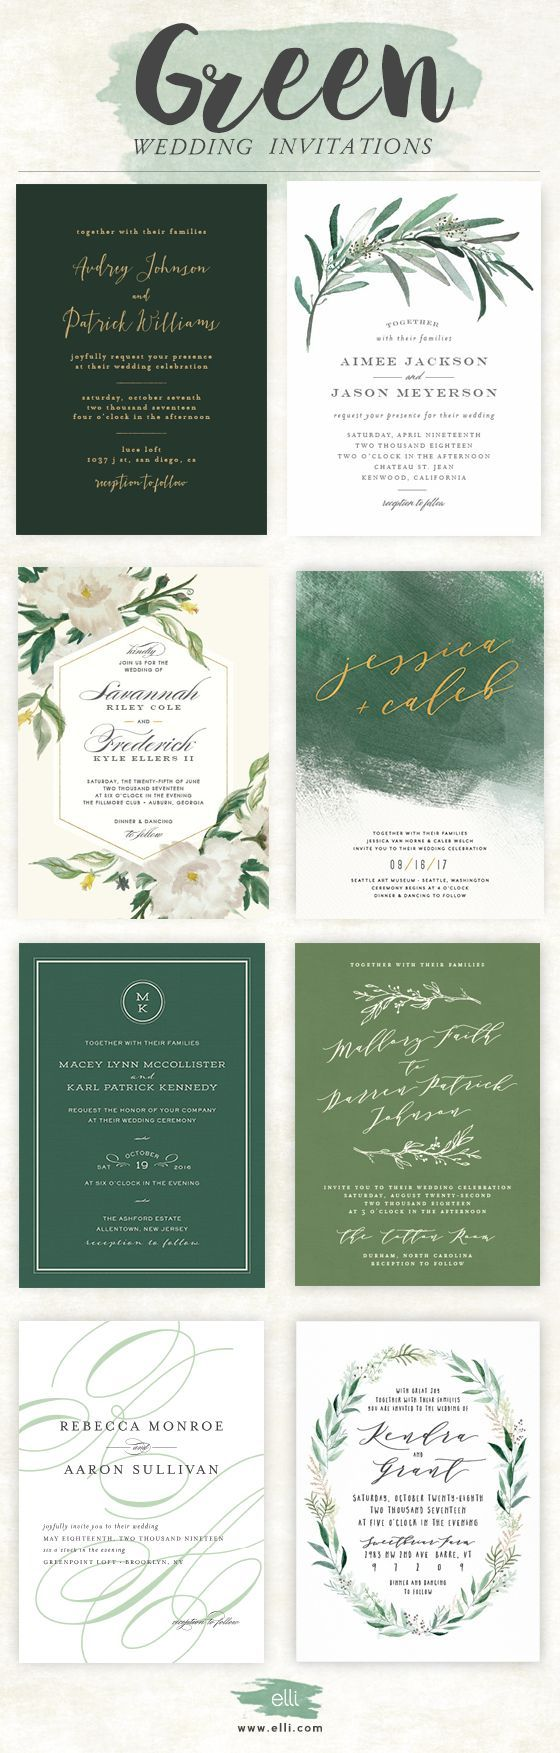 sample spanish wedding invitations%0A Gorgeous selection of green wedding invitations from Elli com